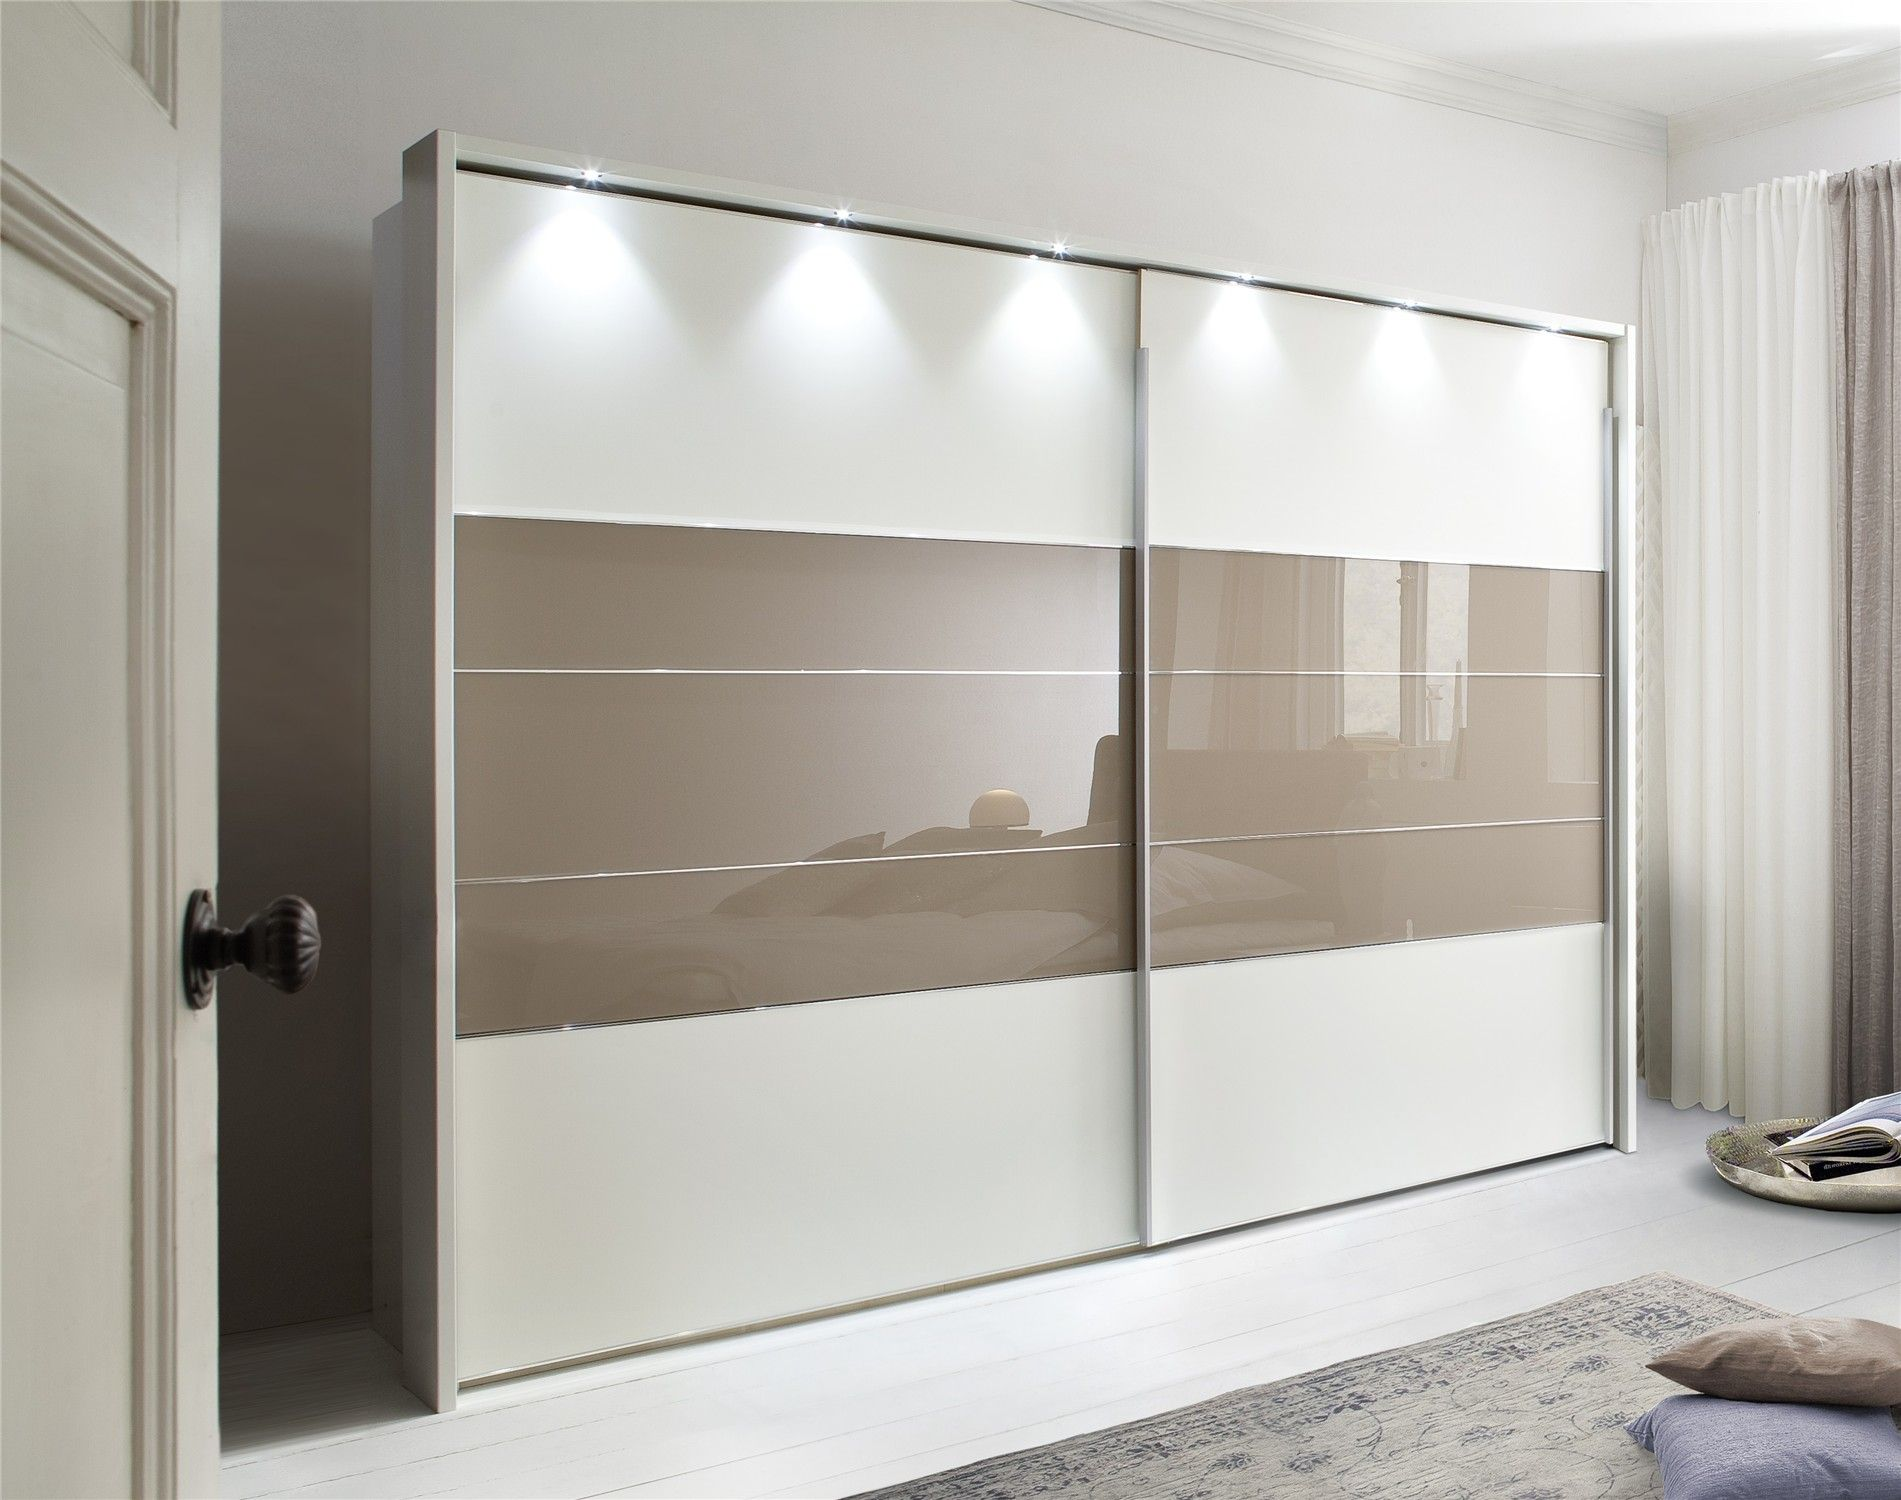 He Can Store All Of His Clothing And Accessories Behind The Sliding Doors Https Sliding Door Wardrobe Designs Wardrobe Door Designs Sliding Wardrobe Doors